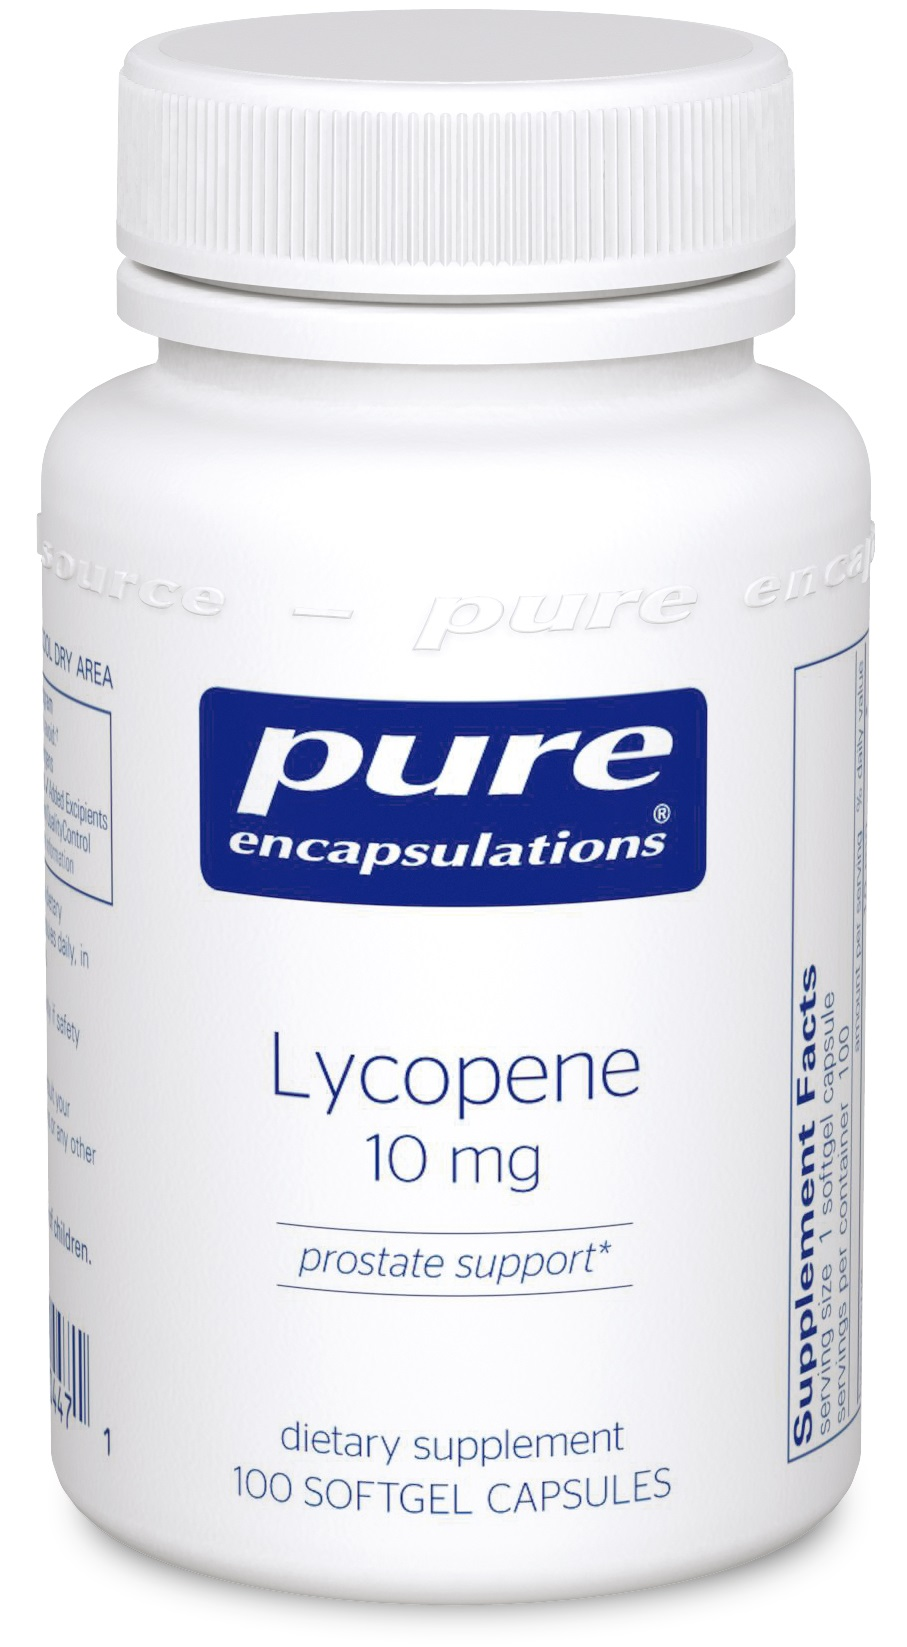 Pure Encapsulations Lycopene 10 mg